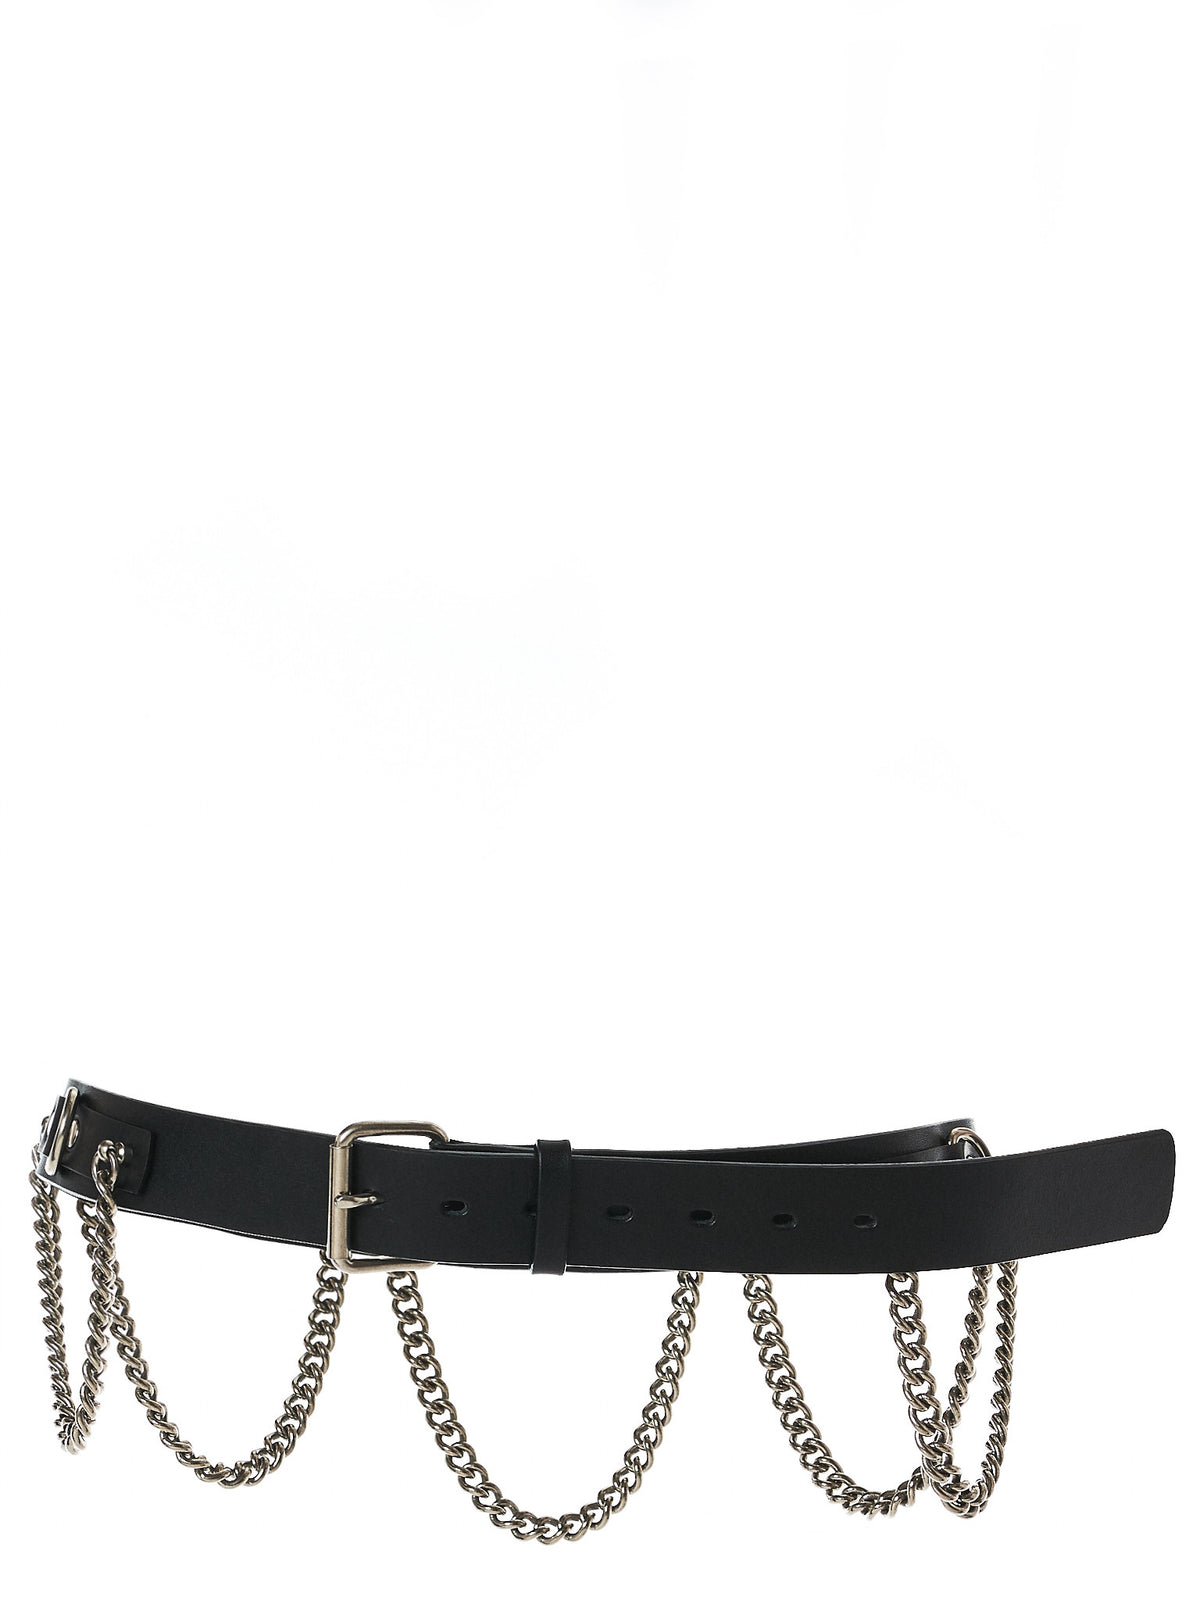 Chained Leather Belt (JT-K301-051-1)